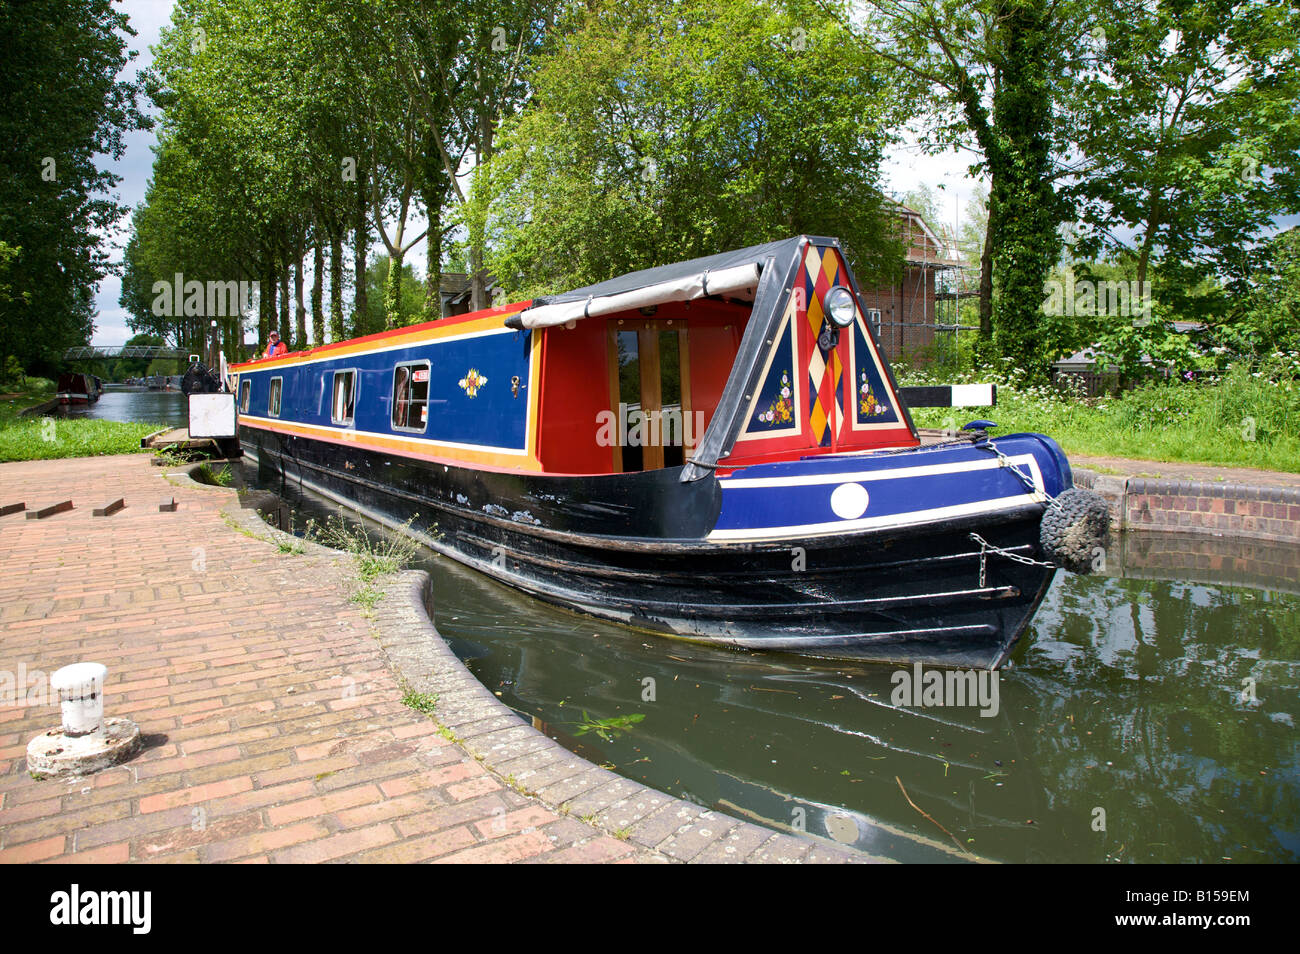 THE NARROWBOAT CENTURION NAVIGATING LOCK GATE 95 AT ALDERMASTON WHARF KENNET AND AVON CANAL, READING, BERKSHIRE - Stock Image